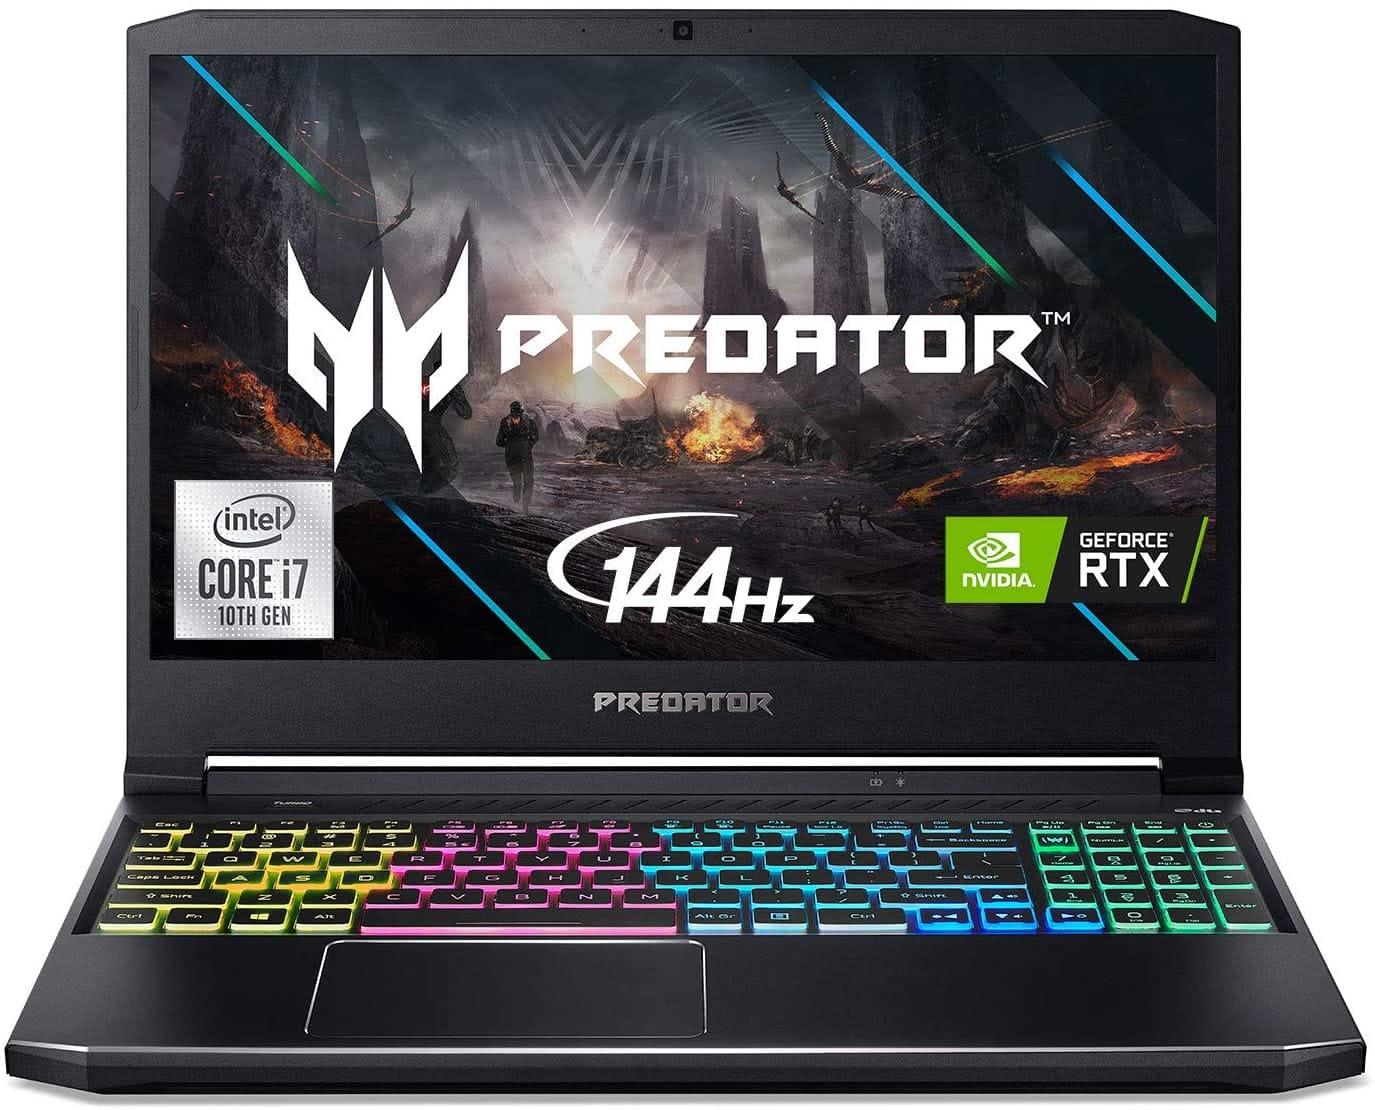 "Acer Predator Helios 300 Gaming Laptop, Intel i7-10750H, NVIDIA GeForce RTX 2060 6GB, 15.6"" Full HD 144Hz 3ms IPS Display, 16GB Dual-Channel DDR4, 512GB NVMe SSD $1199"